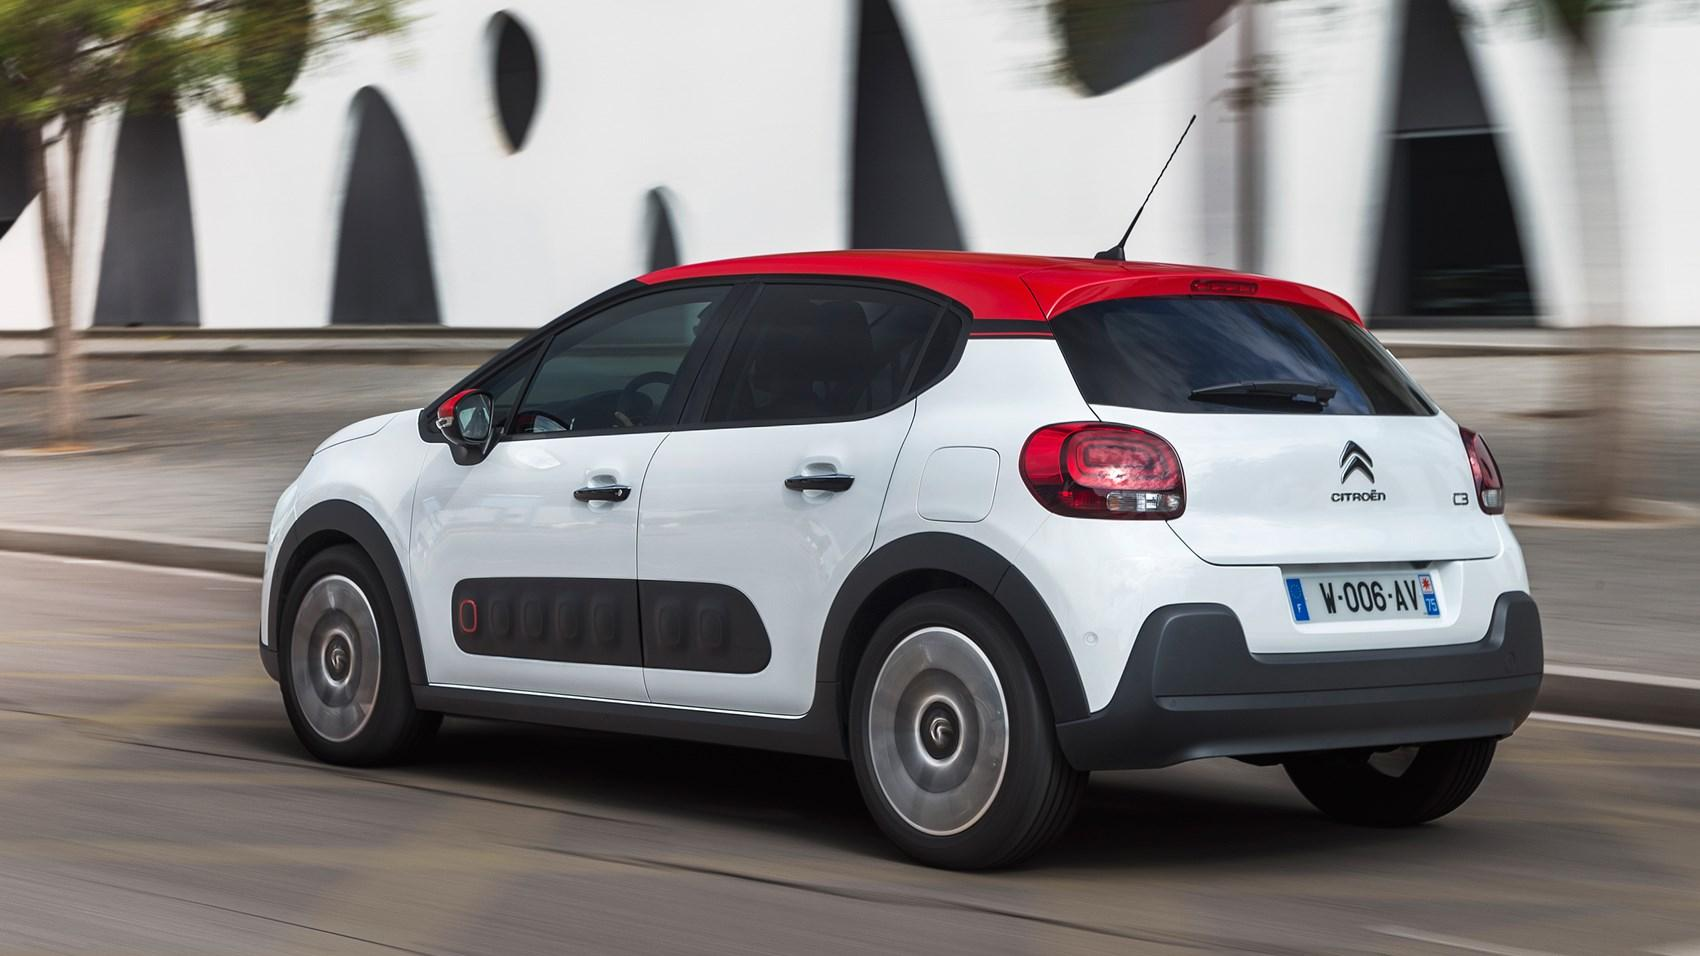 2018 Citroen C3 Puretech MPG and Engine Performance